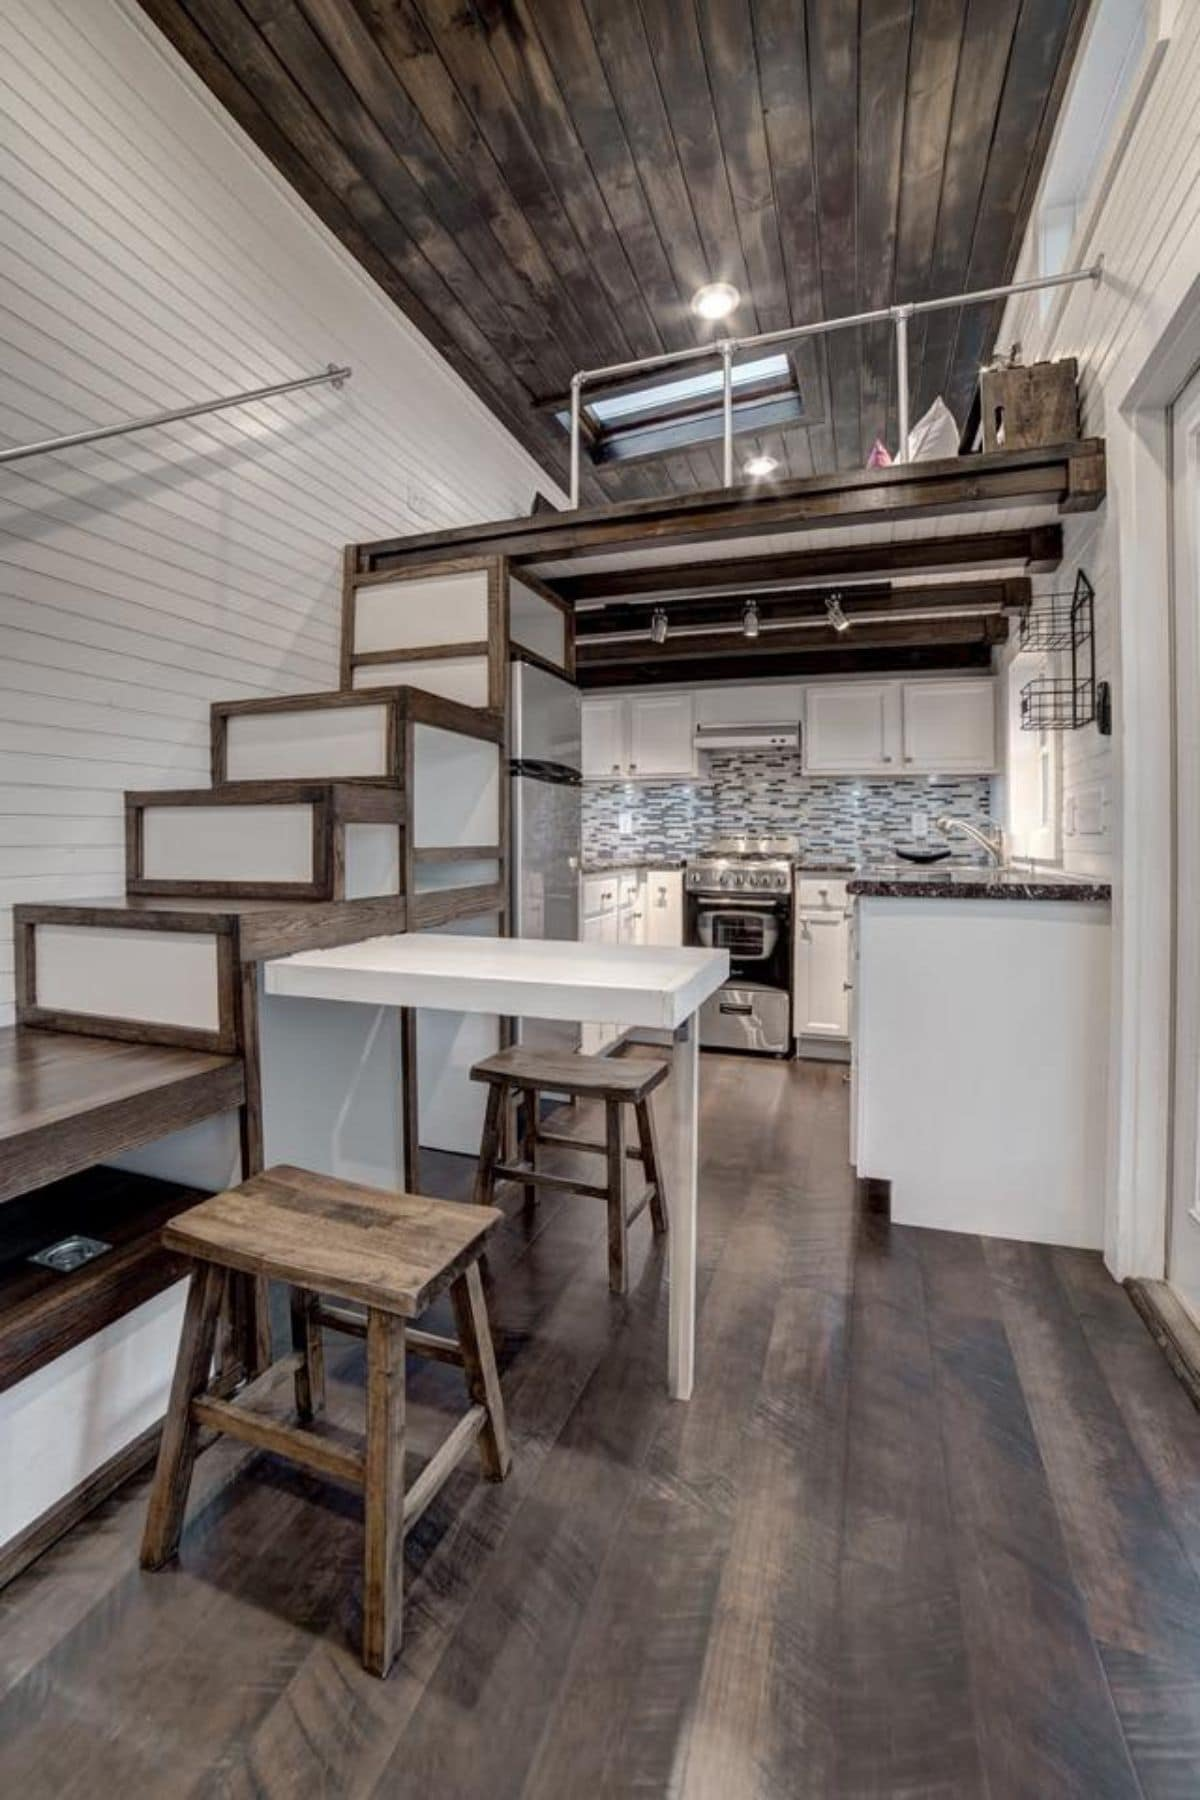 Stairs to loft on left sie of image with pull out table under one stair